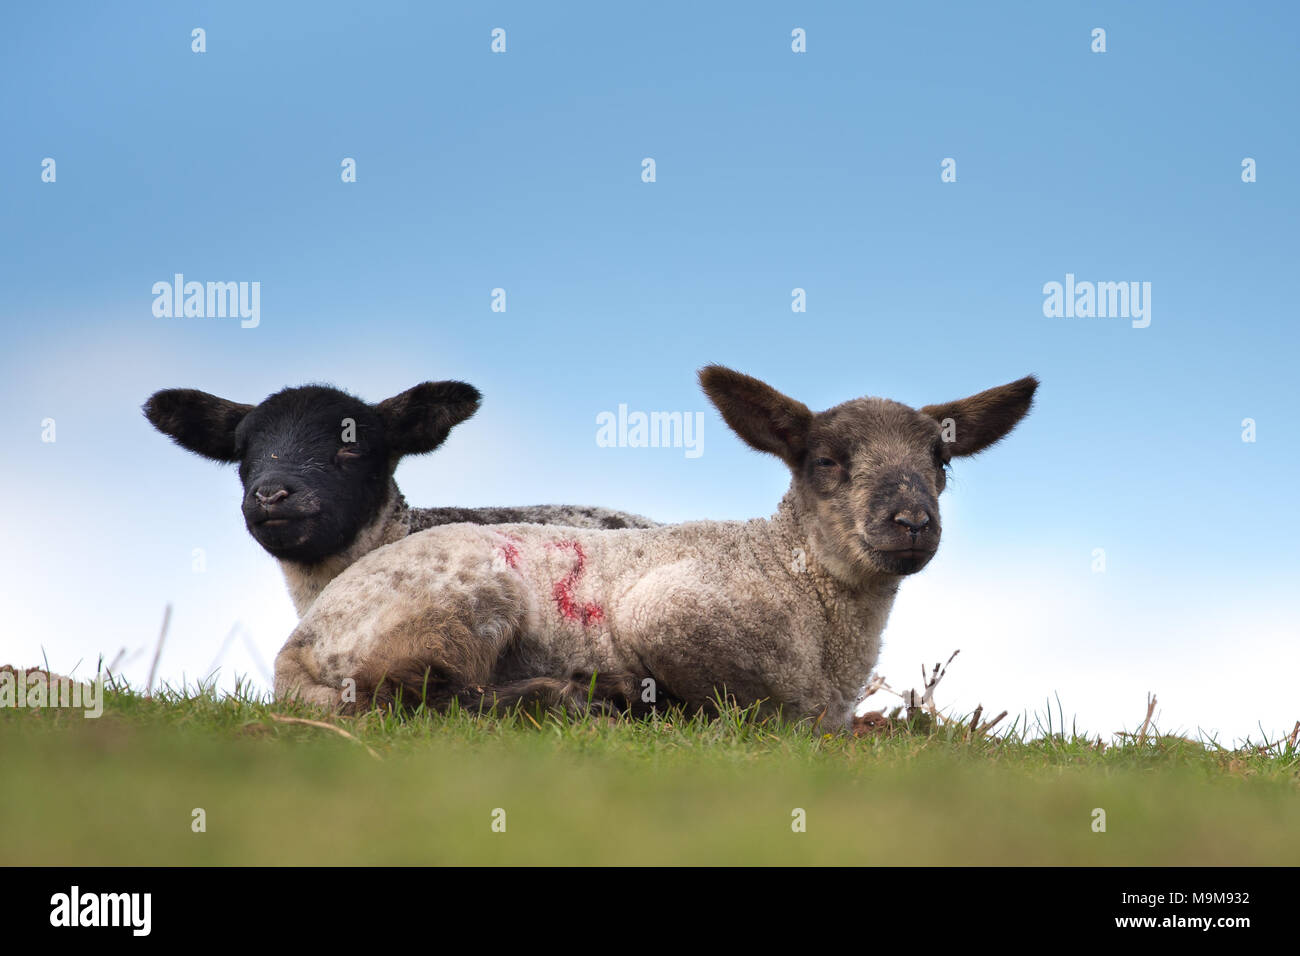 Detailed, landscape close up of two springtime lambs seated on grass against blue sky background, both looking to camera. Stock Photo